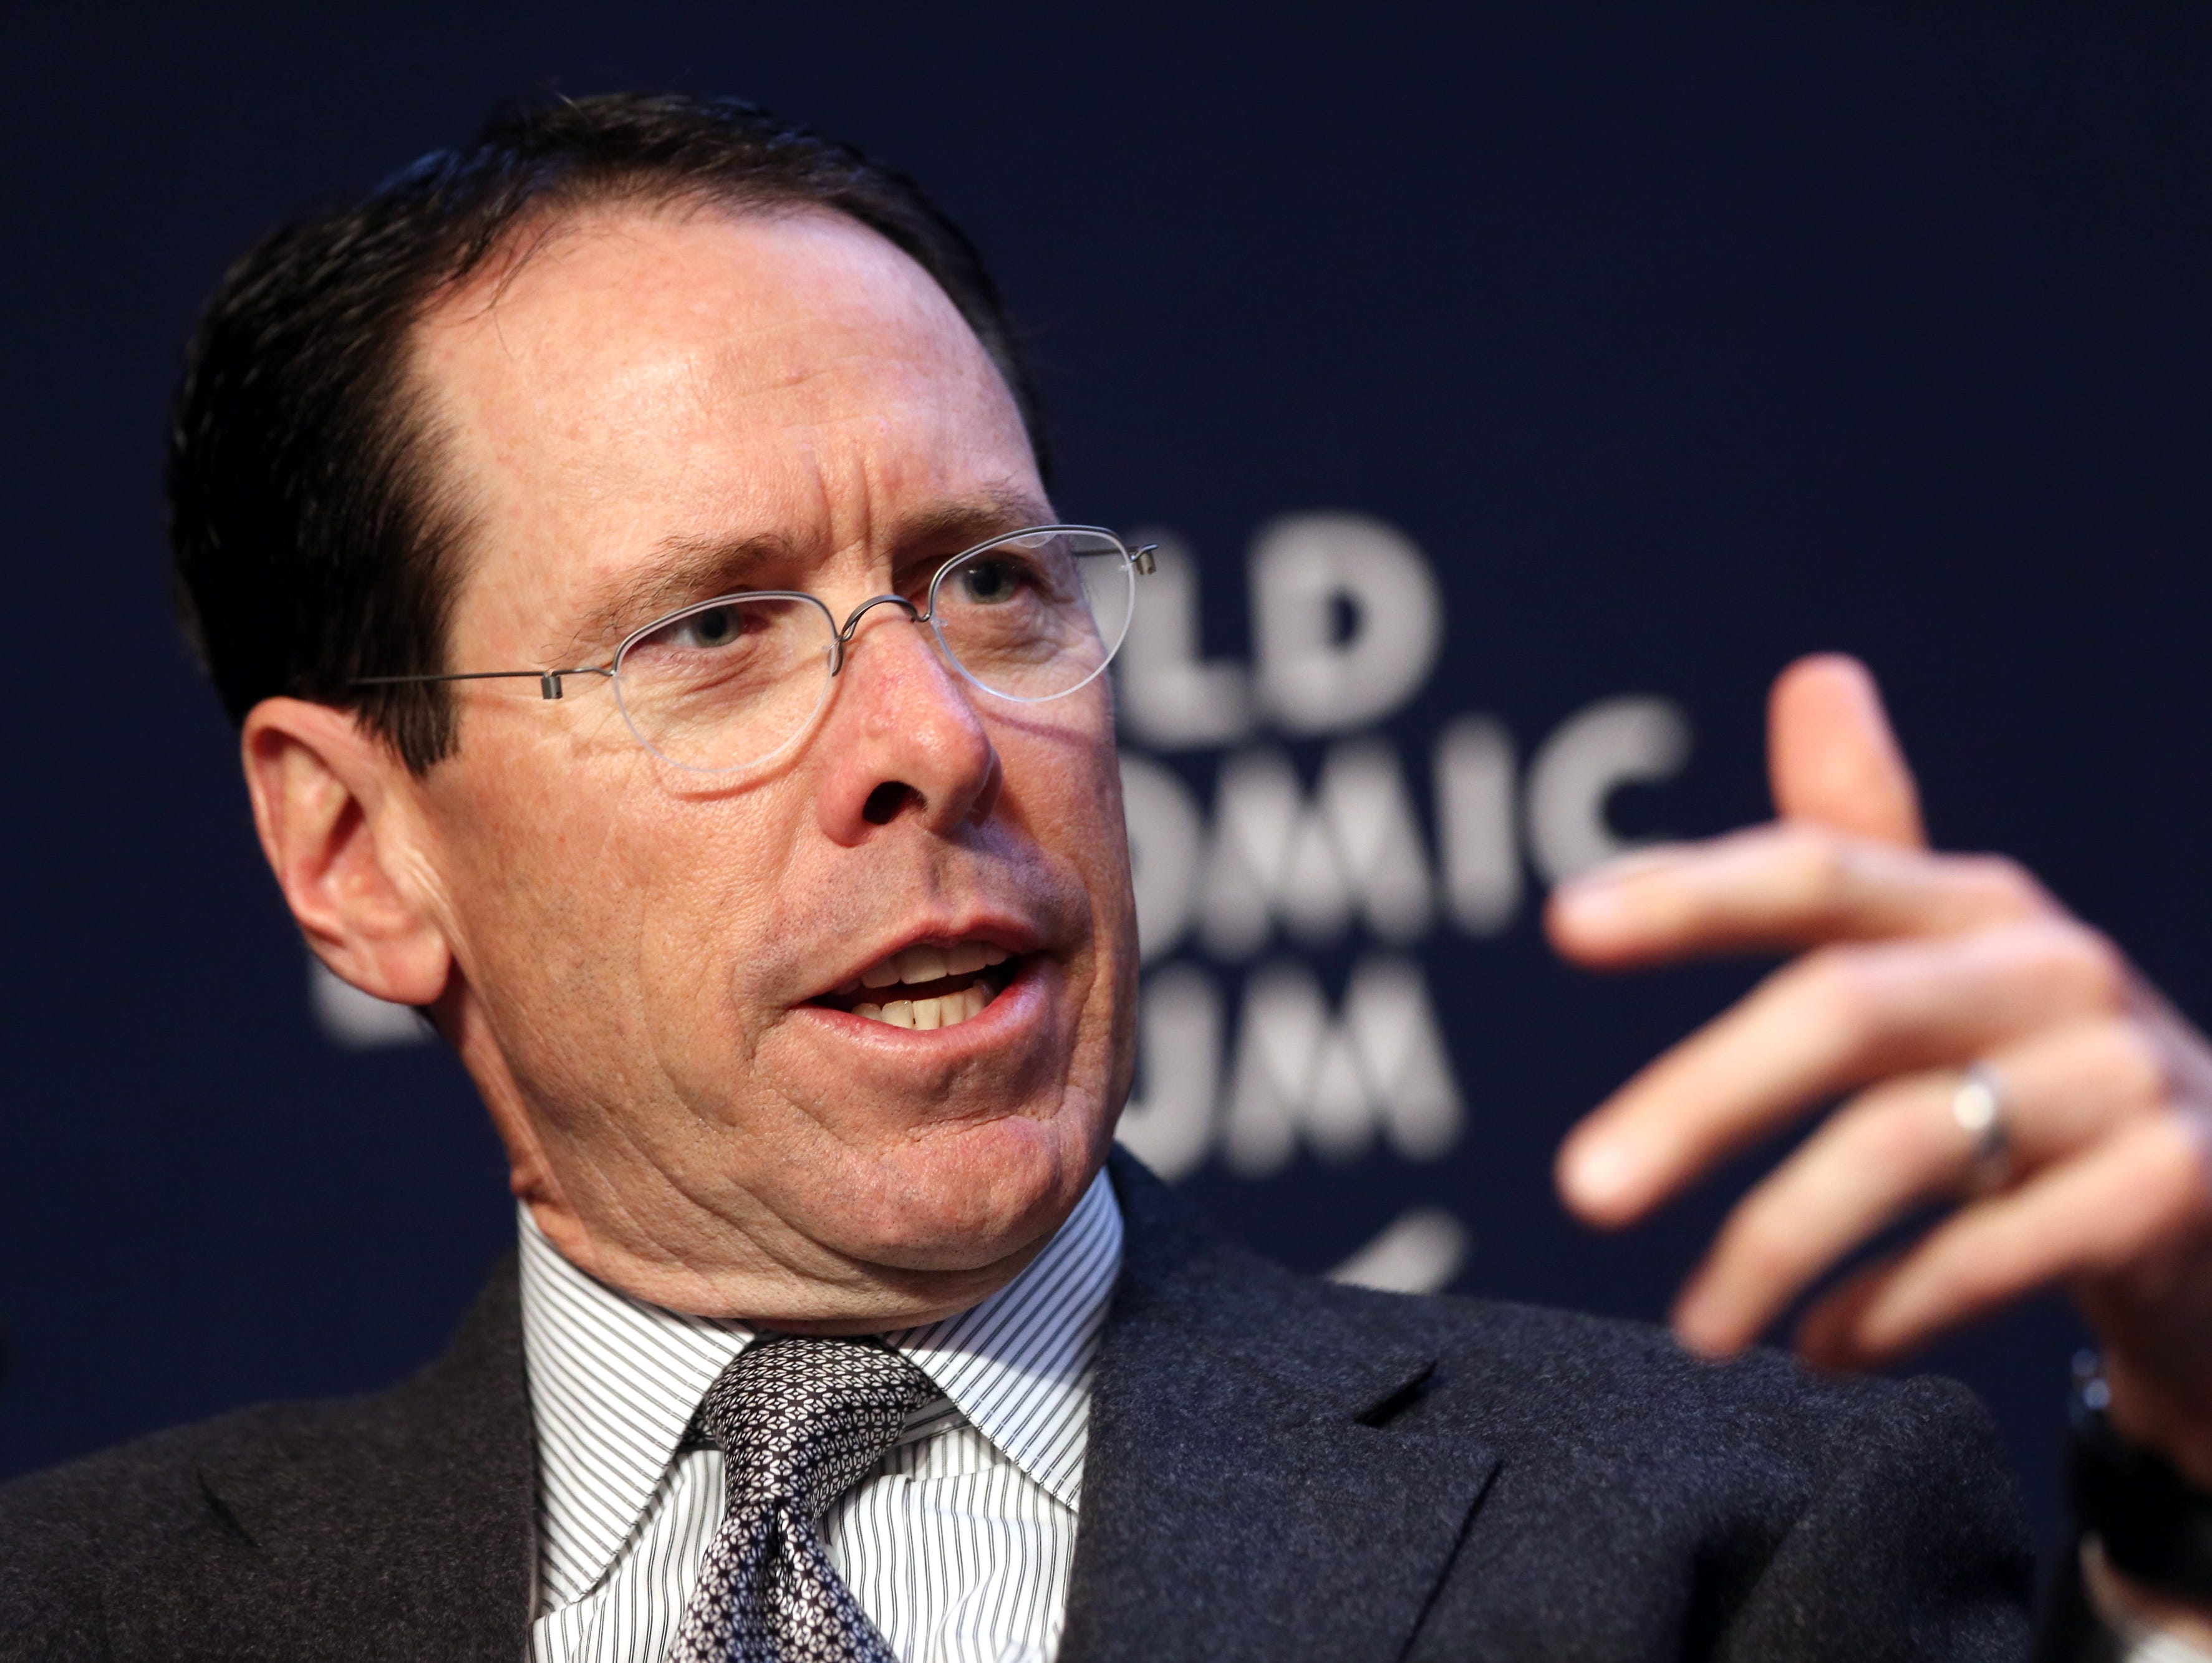 Randall Stephenson, chief executive officer of AT&T Inc., in a session on the opening day of the World Economic Forum (WEF) in Davos, Switzerland, on Wednesday, Jan. 22, 2014.